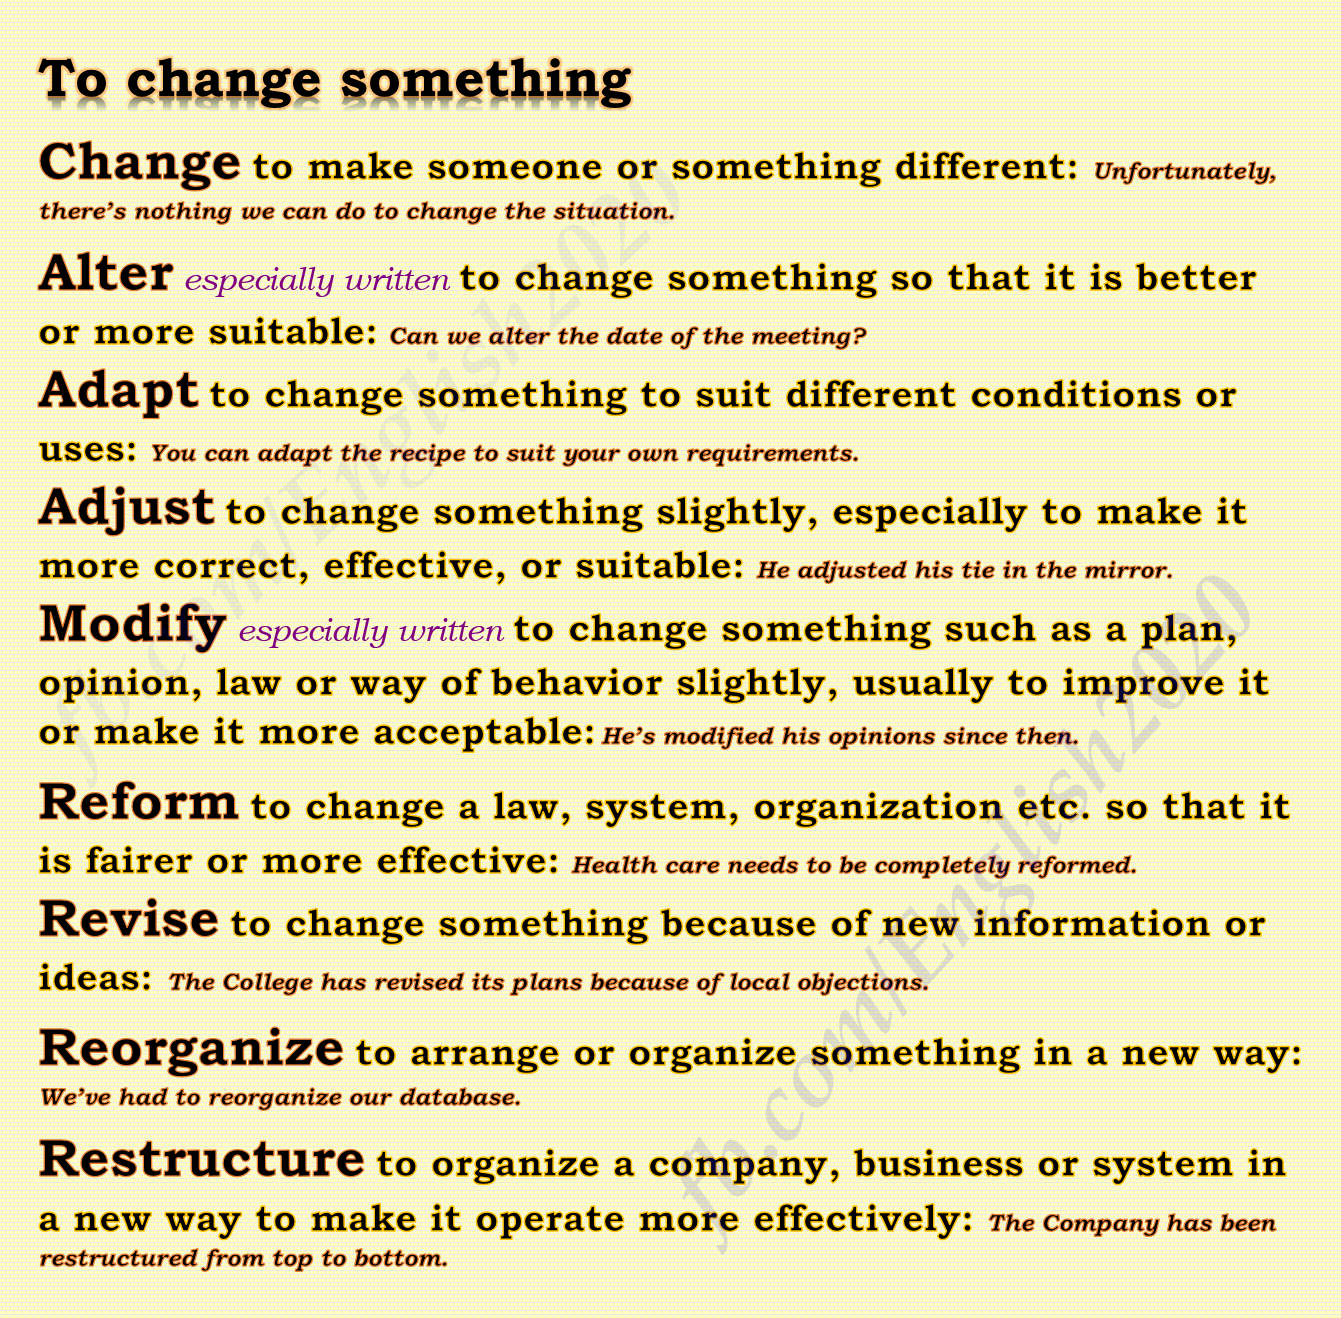 Synonyms to change something learnenglish Learn